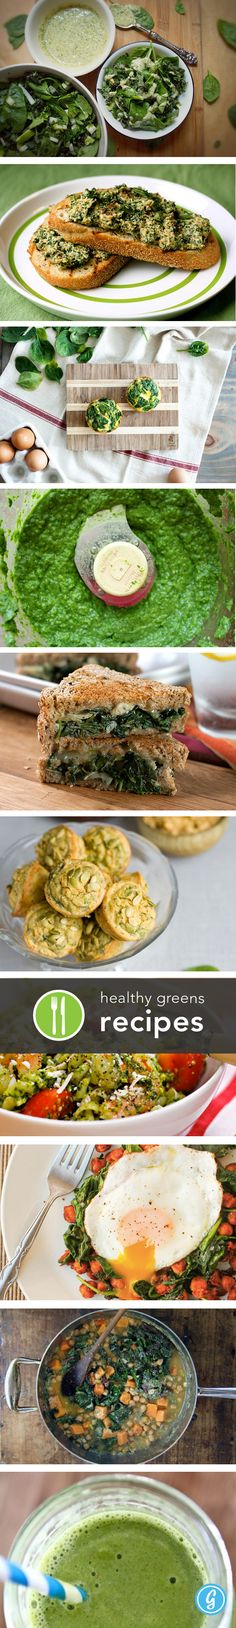 Healthy Greens Recipes